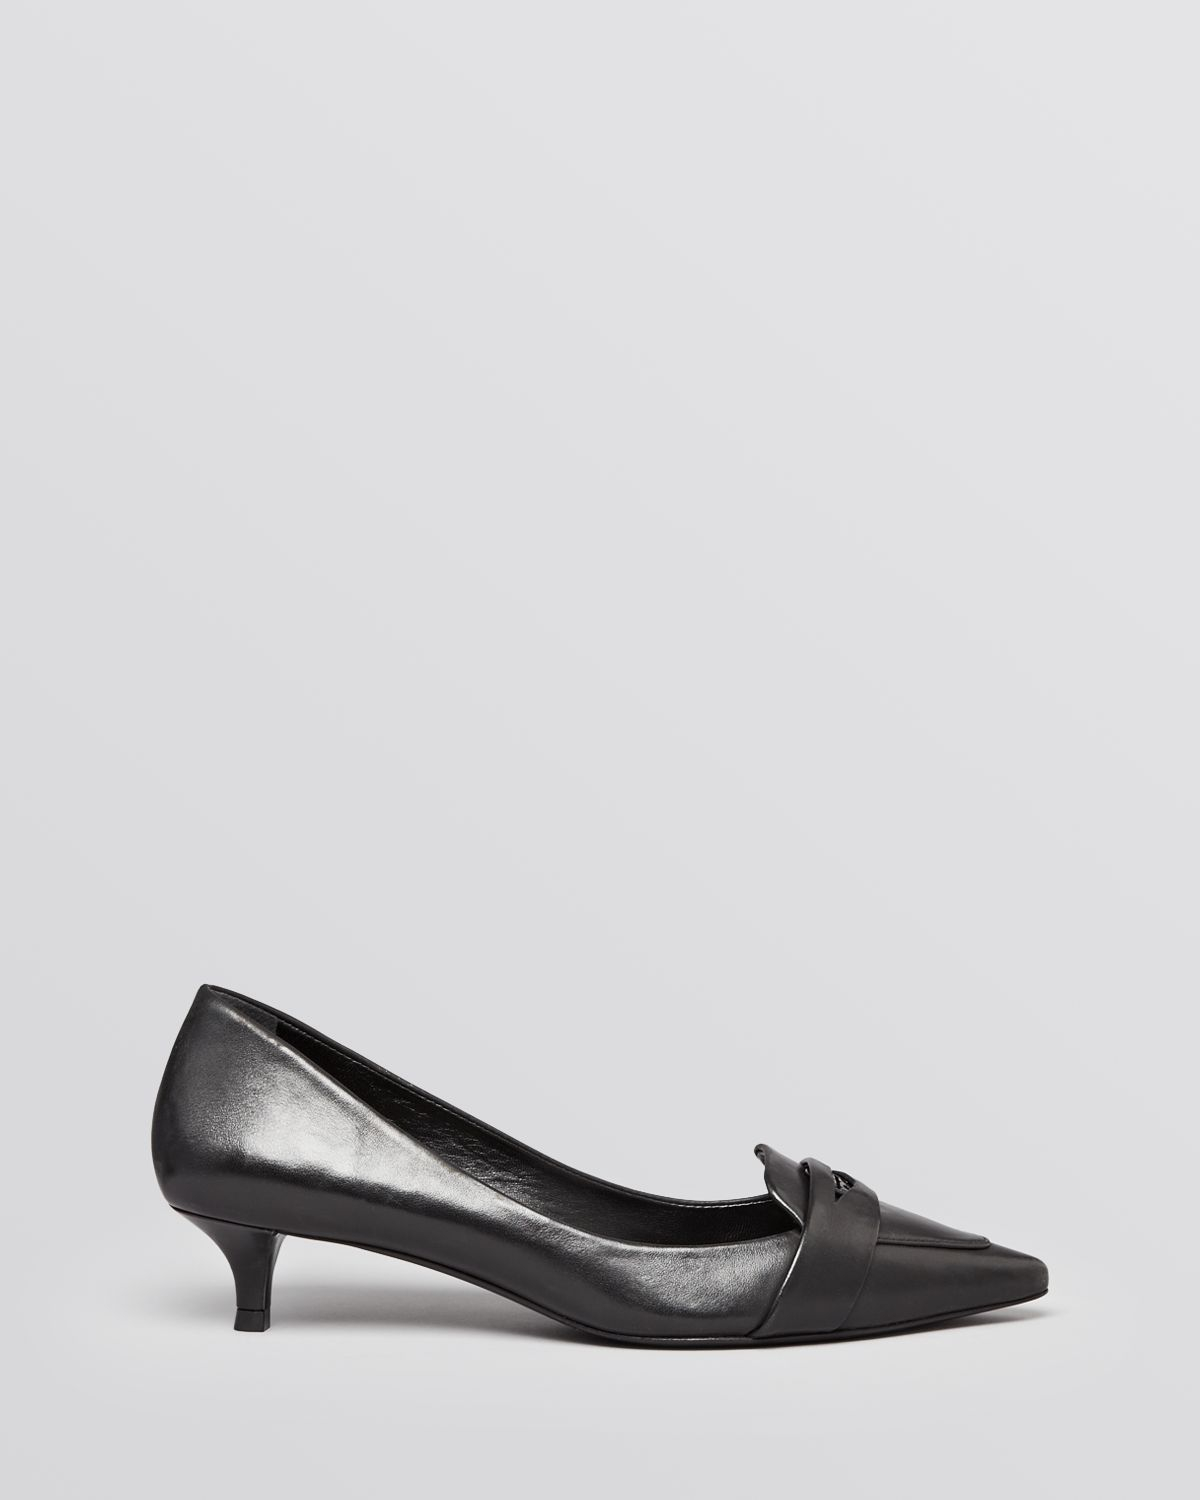 91be8d6ea95 Lyst - Tory Burch Pointed Toe Pumps - Bronson in Natural